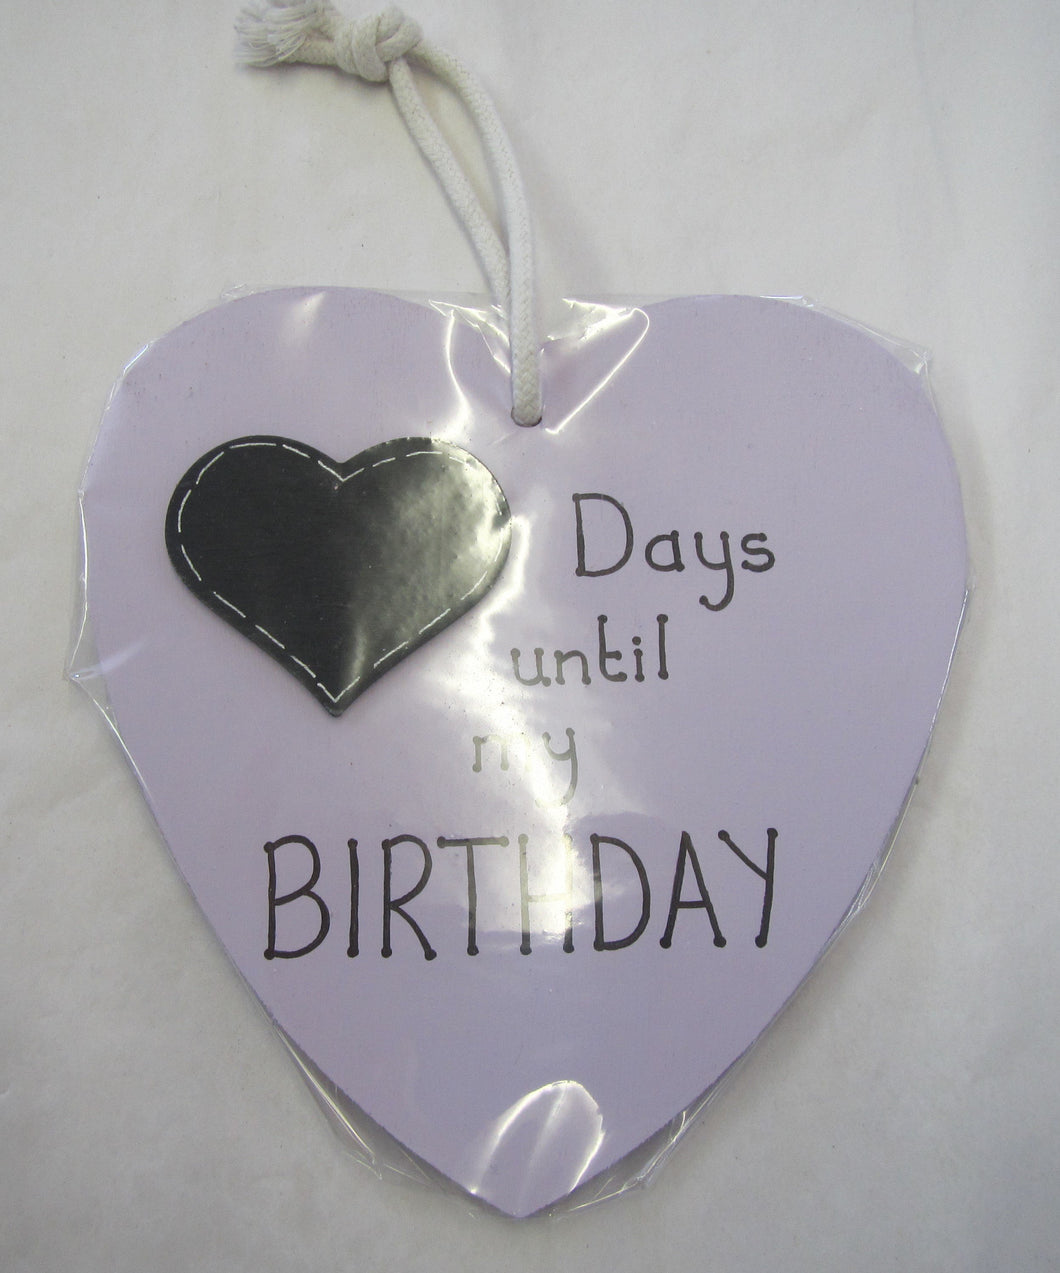 Beautiful handcrafted heart - days until my birthday